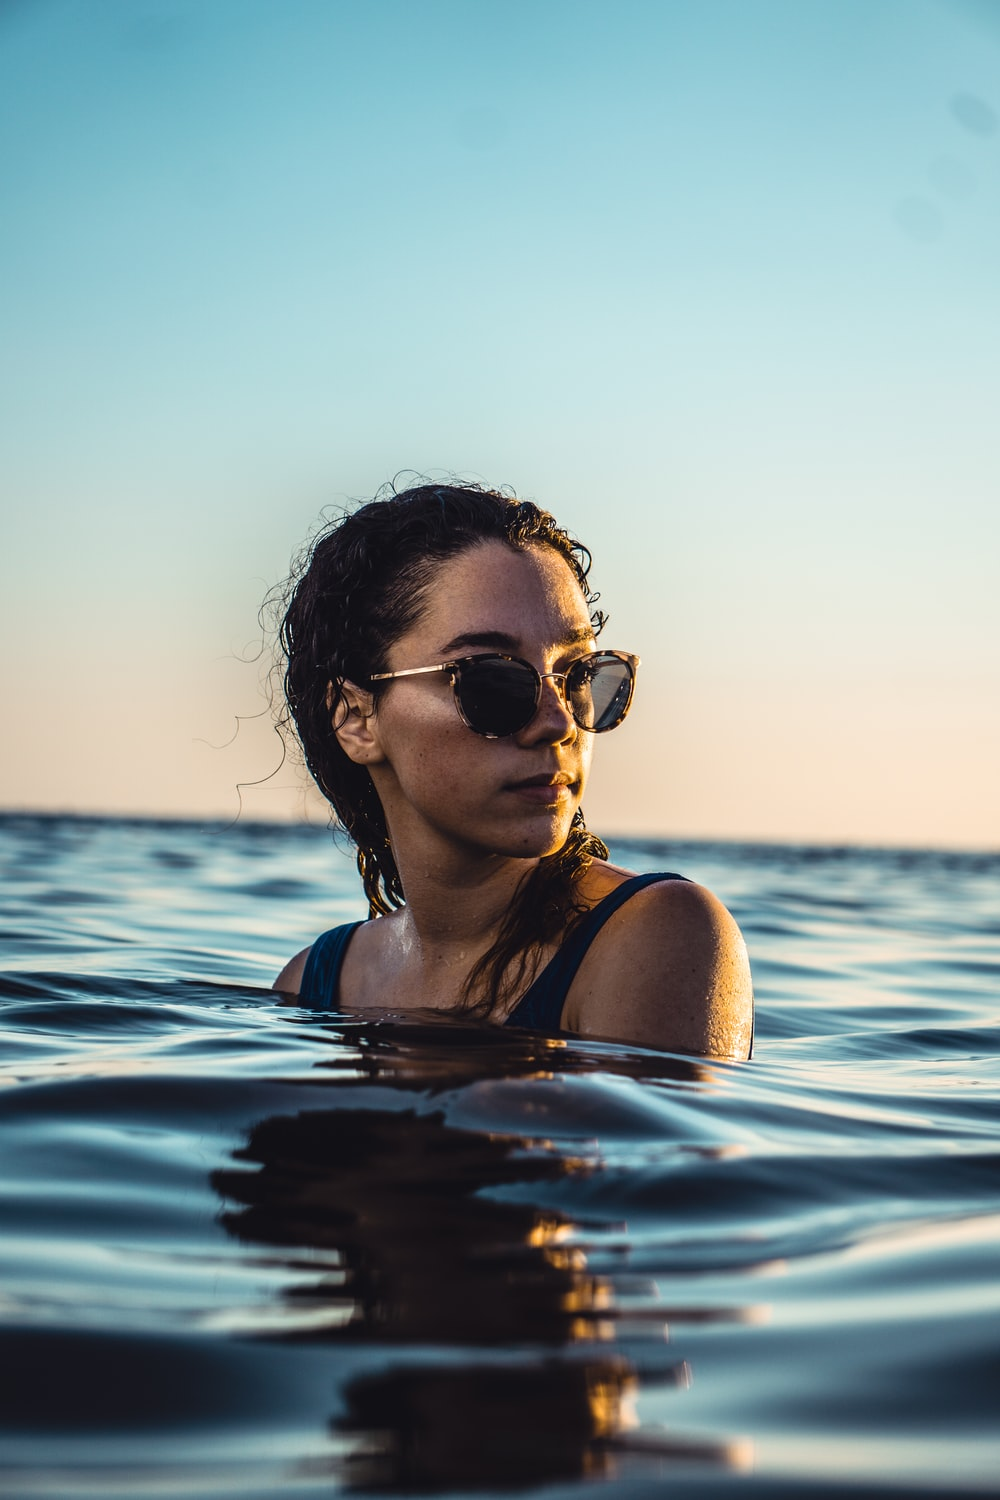 woman standing in body of water during daytime